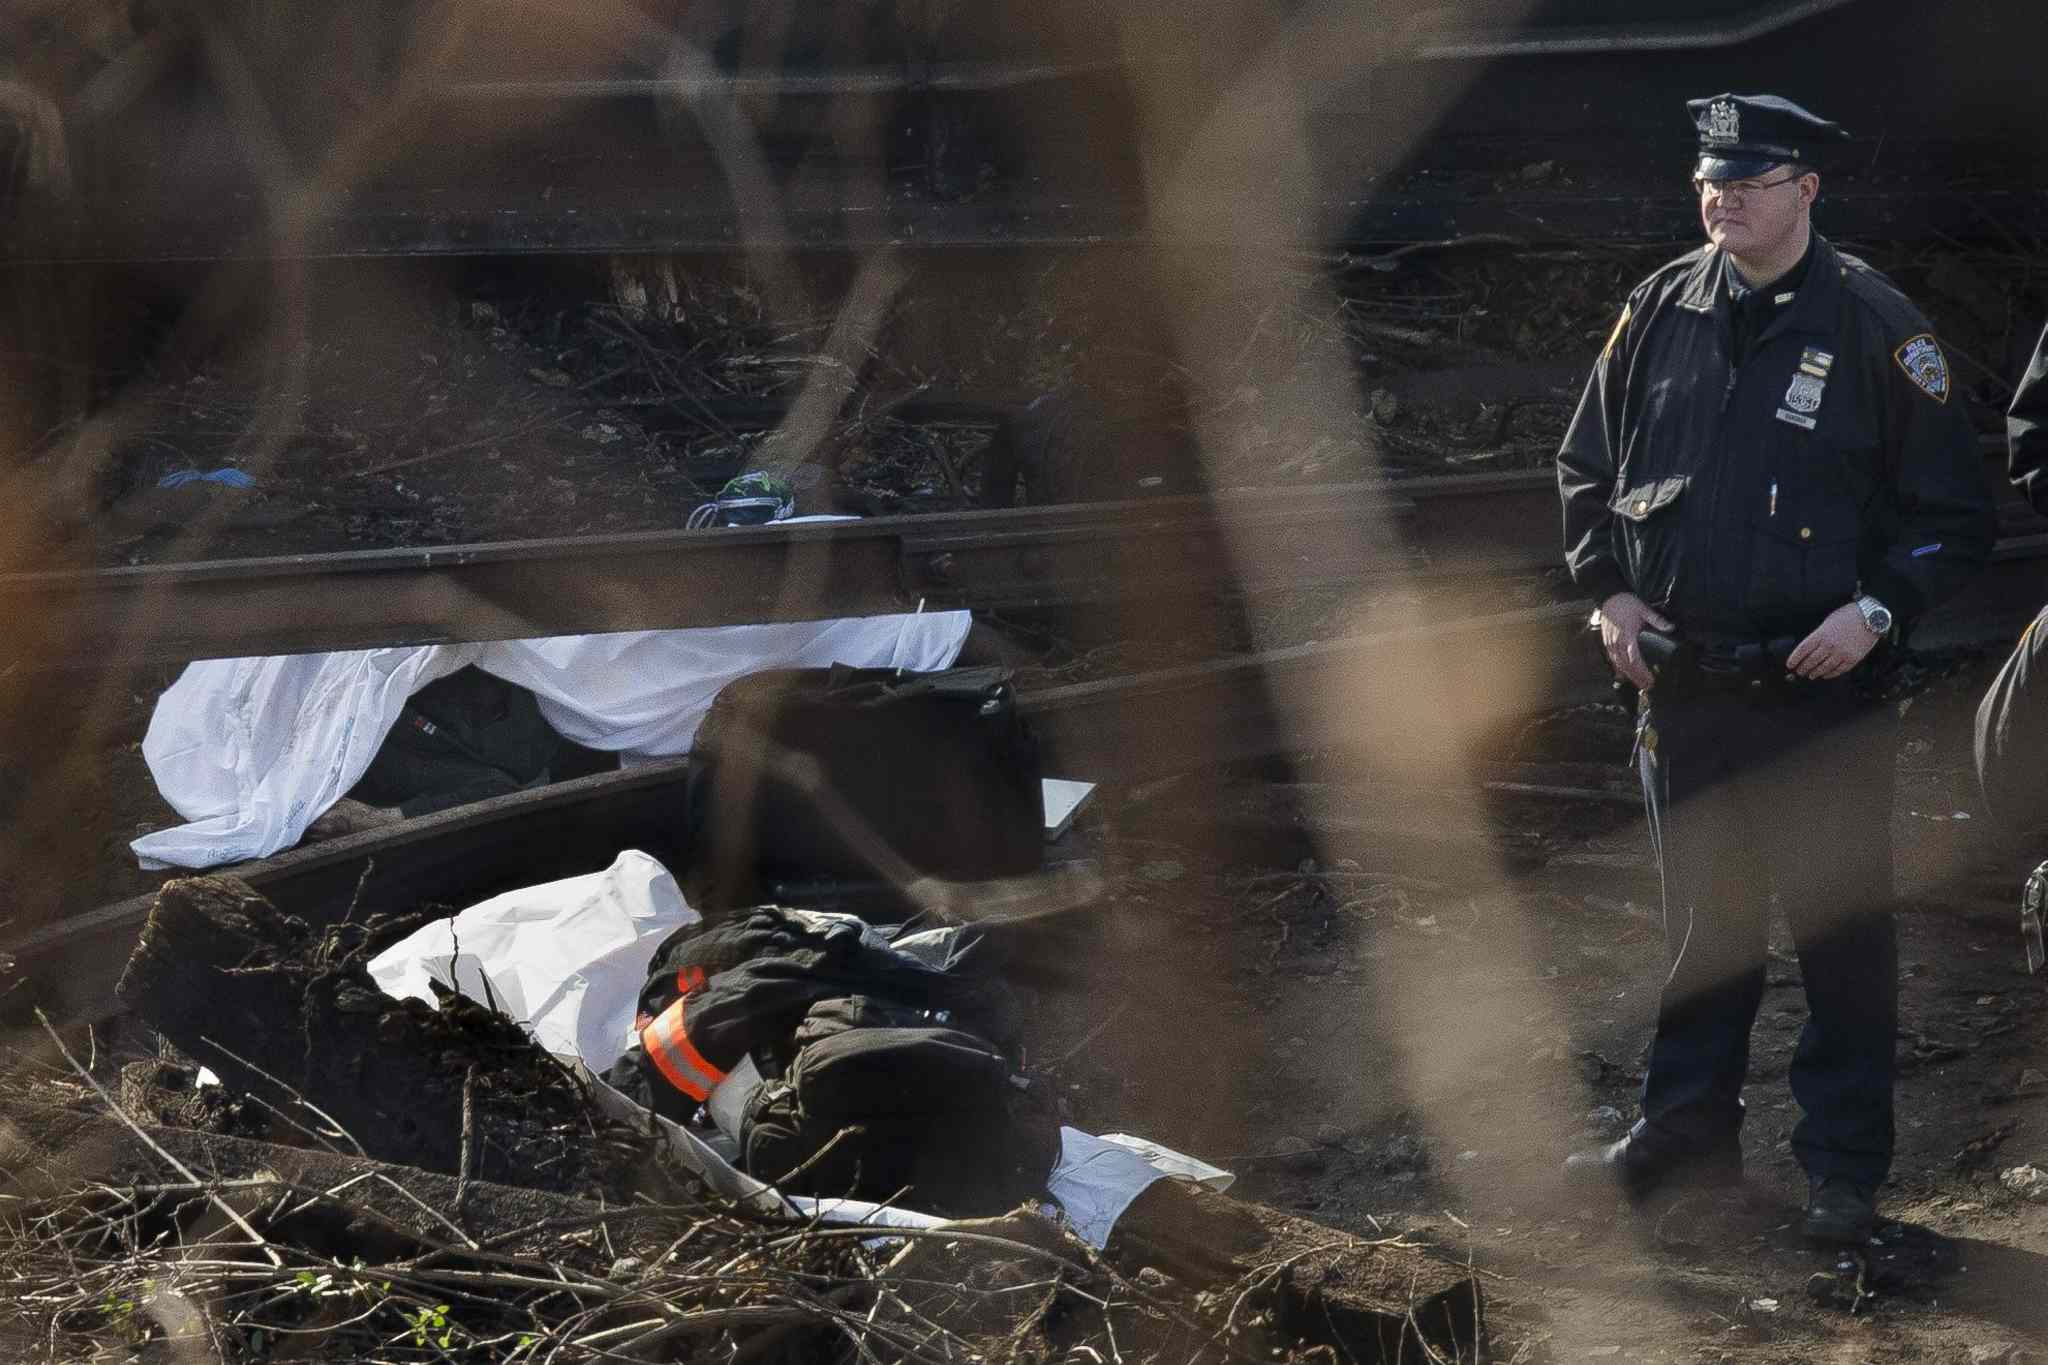 A police officer stands guard over a body at the scene of the passenger train derailment.